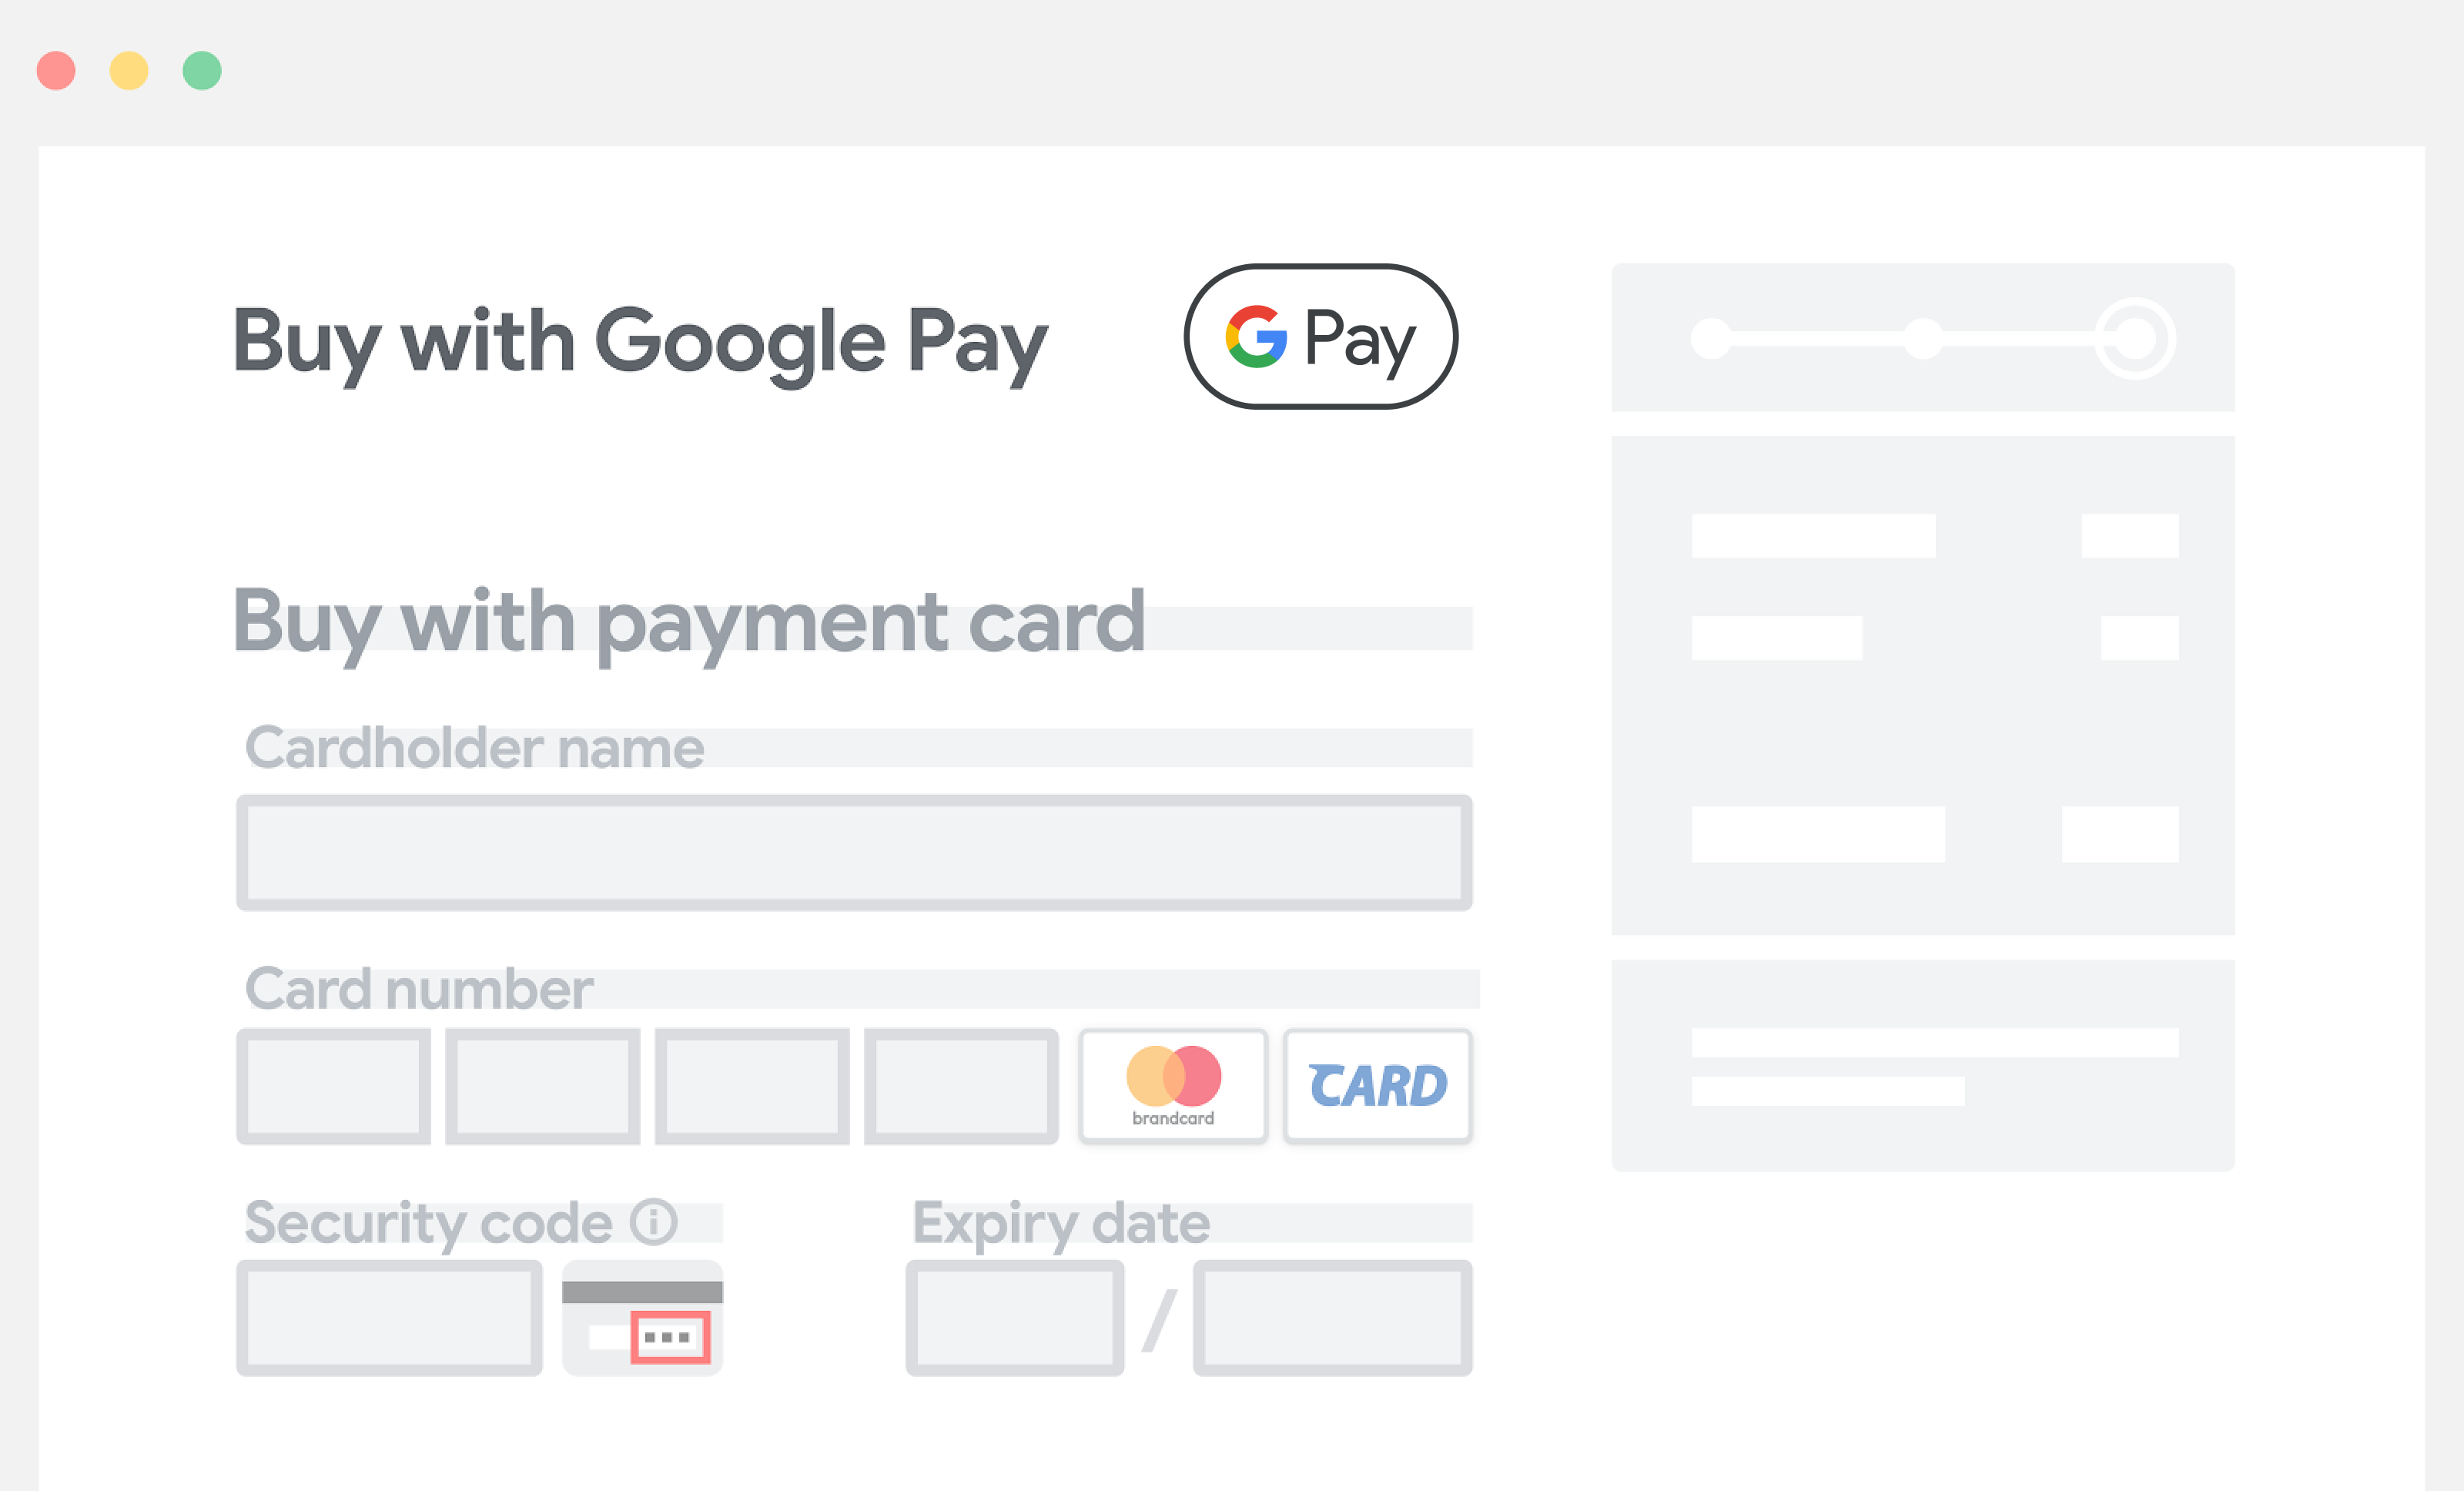 Place Google Pay above manual entry fields for payment information.